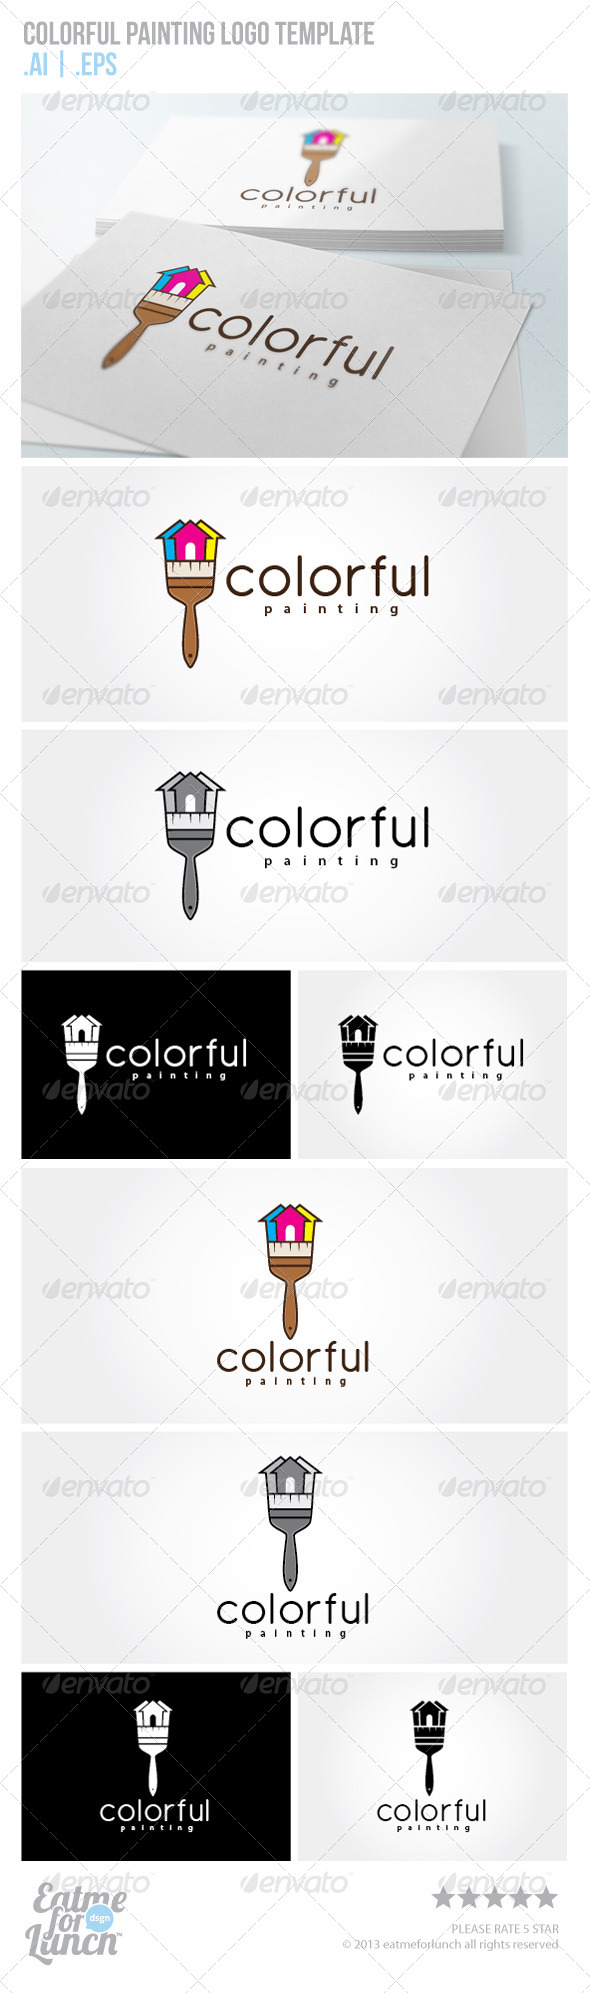 GraphicRiver Colorful Painting Logo Template 5893307